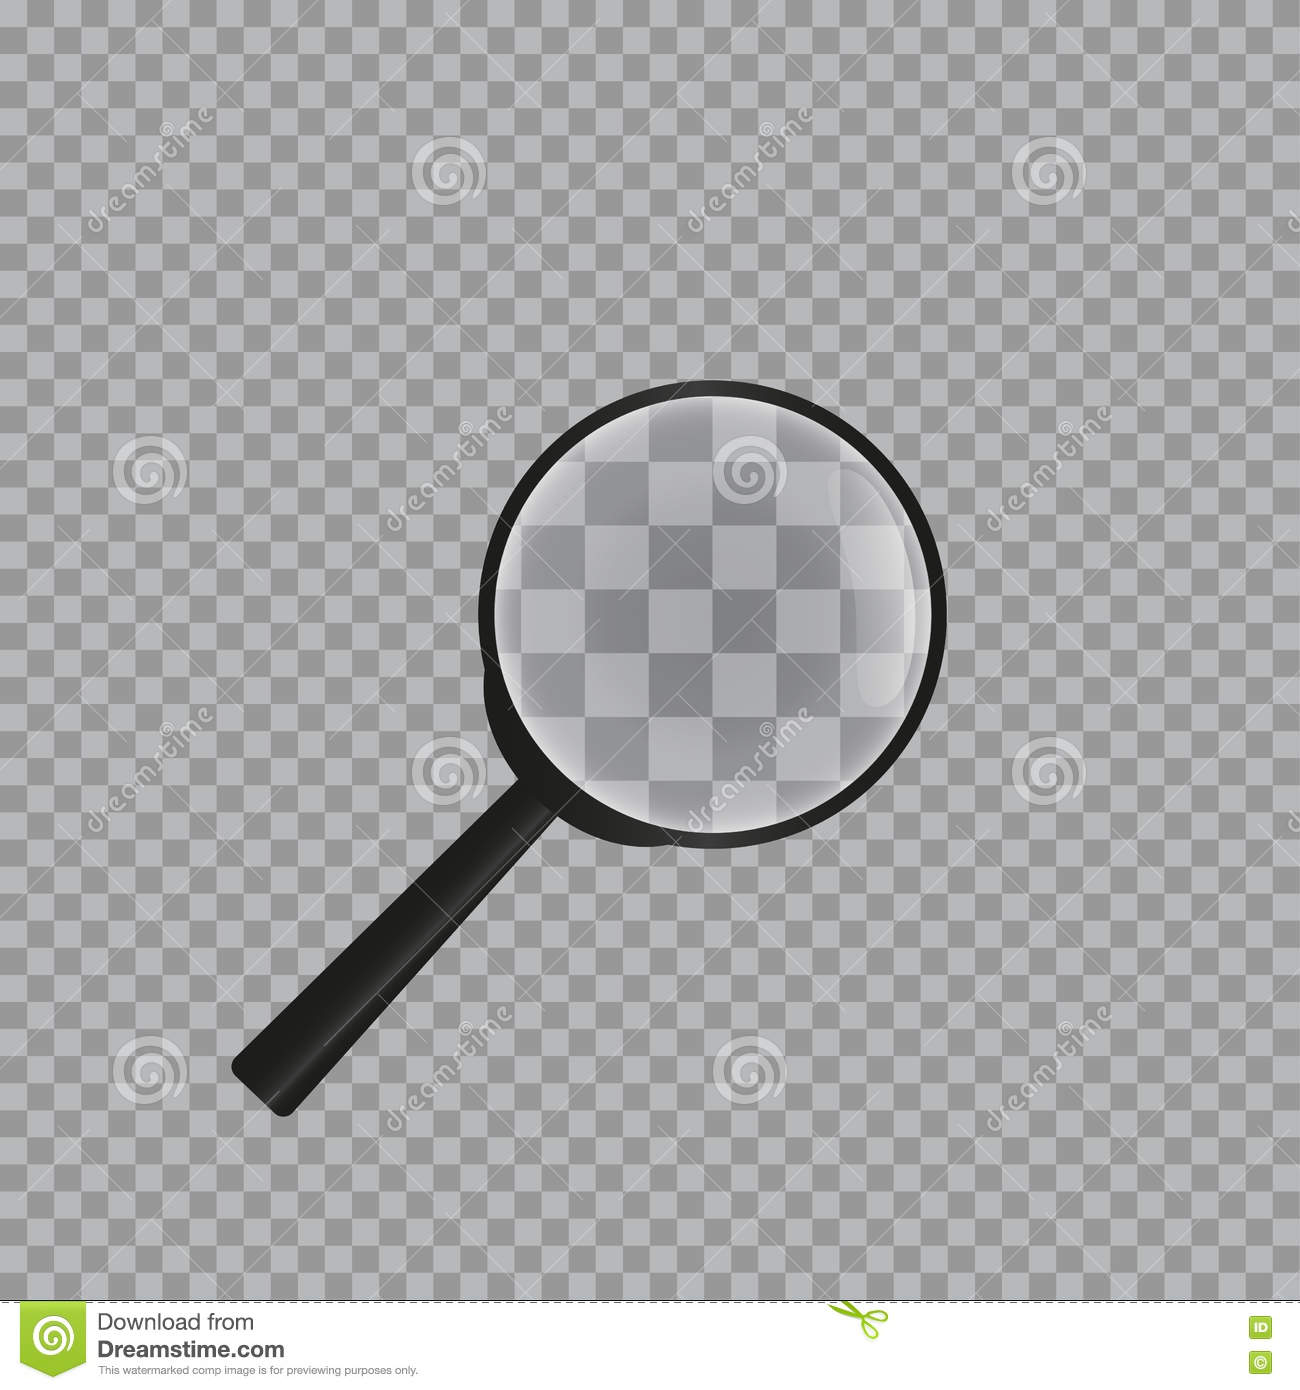 Realistic magnifying glass on checkered background